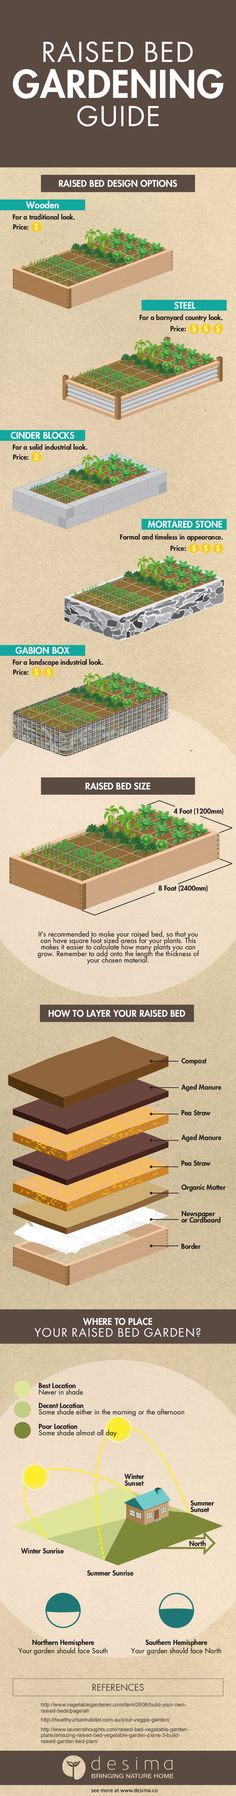 Use this guide to help you build the perfect raised bed garden for your home. Raised bed gardening makes it easier to control weeds, pest control, planting and harvesting. It's important to choose the best materials for your budget. Raised beds also make it easier on your back. Using a quality soil mix as outlined below will help you increase yeilds and quality of your harvest. Raised Bed Gardening Guide Infographic Remember if you use this infographic on your website, you must have a...